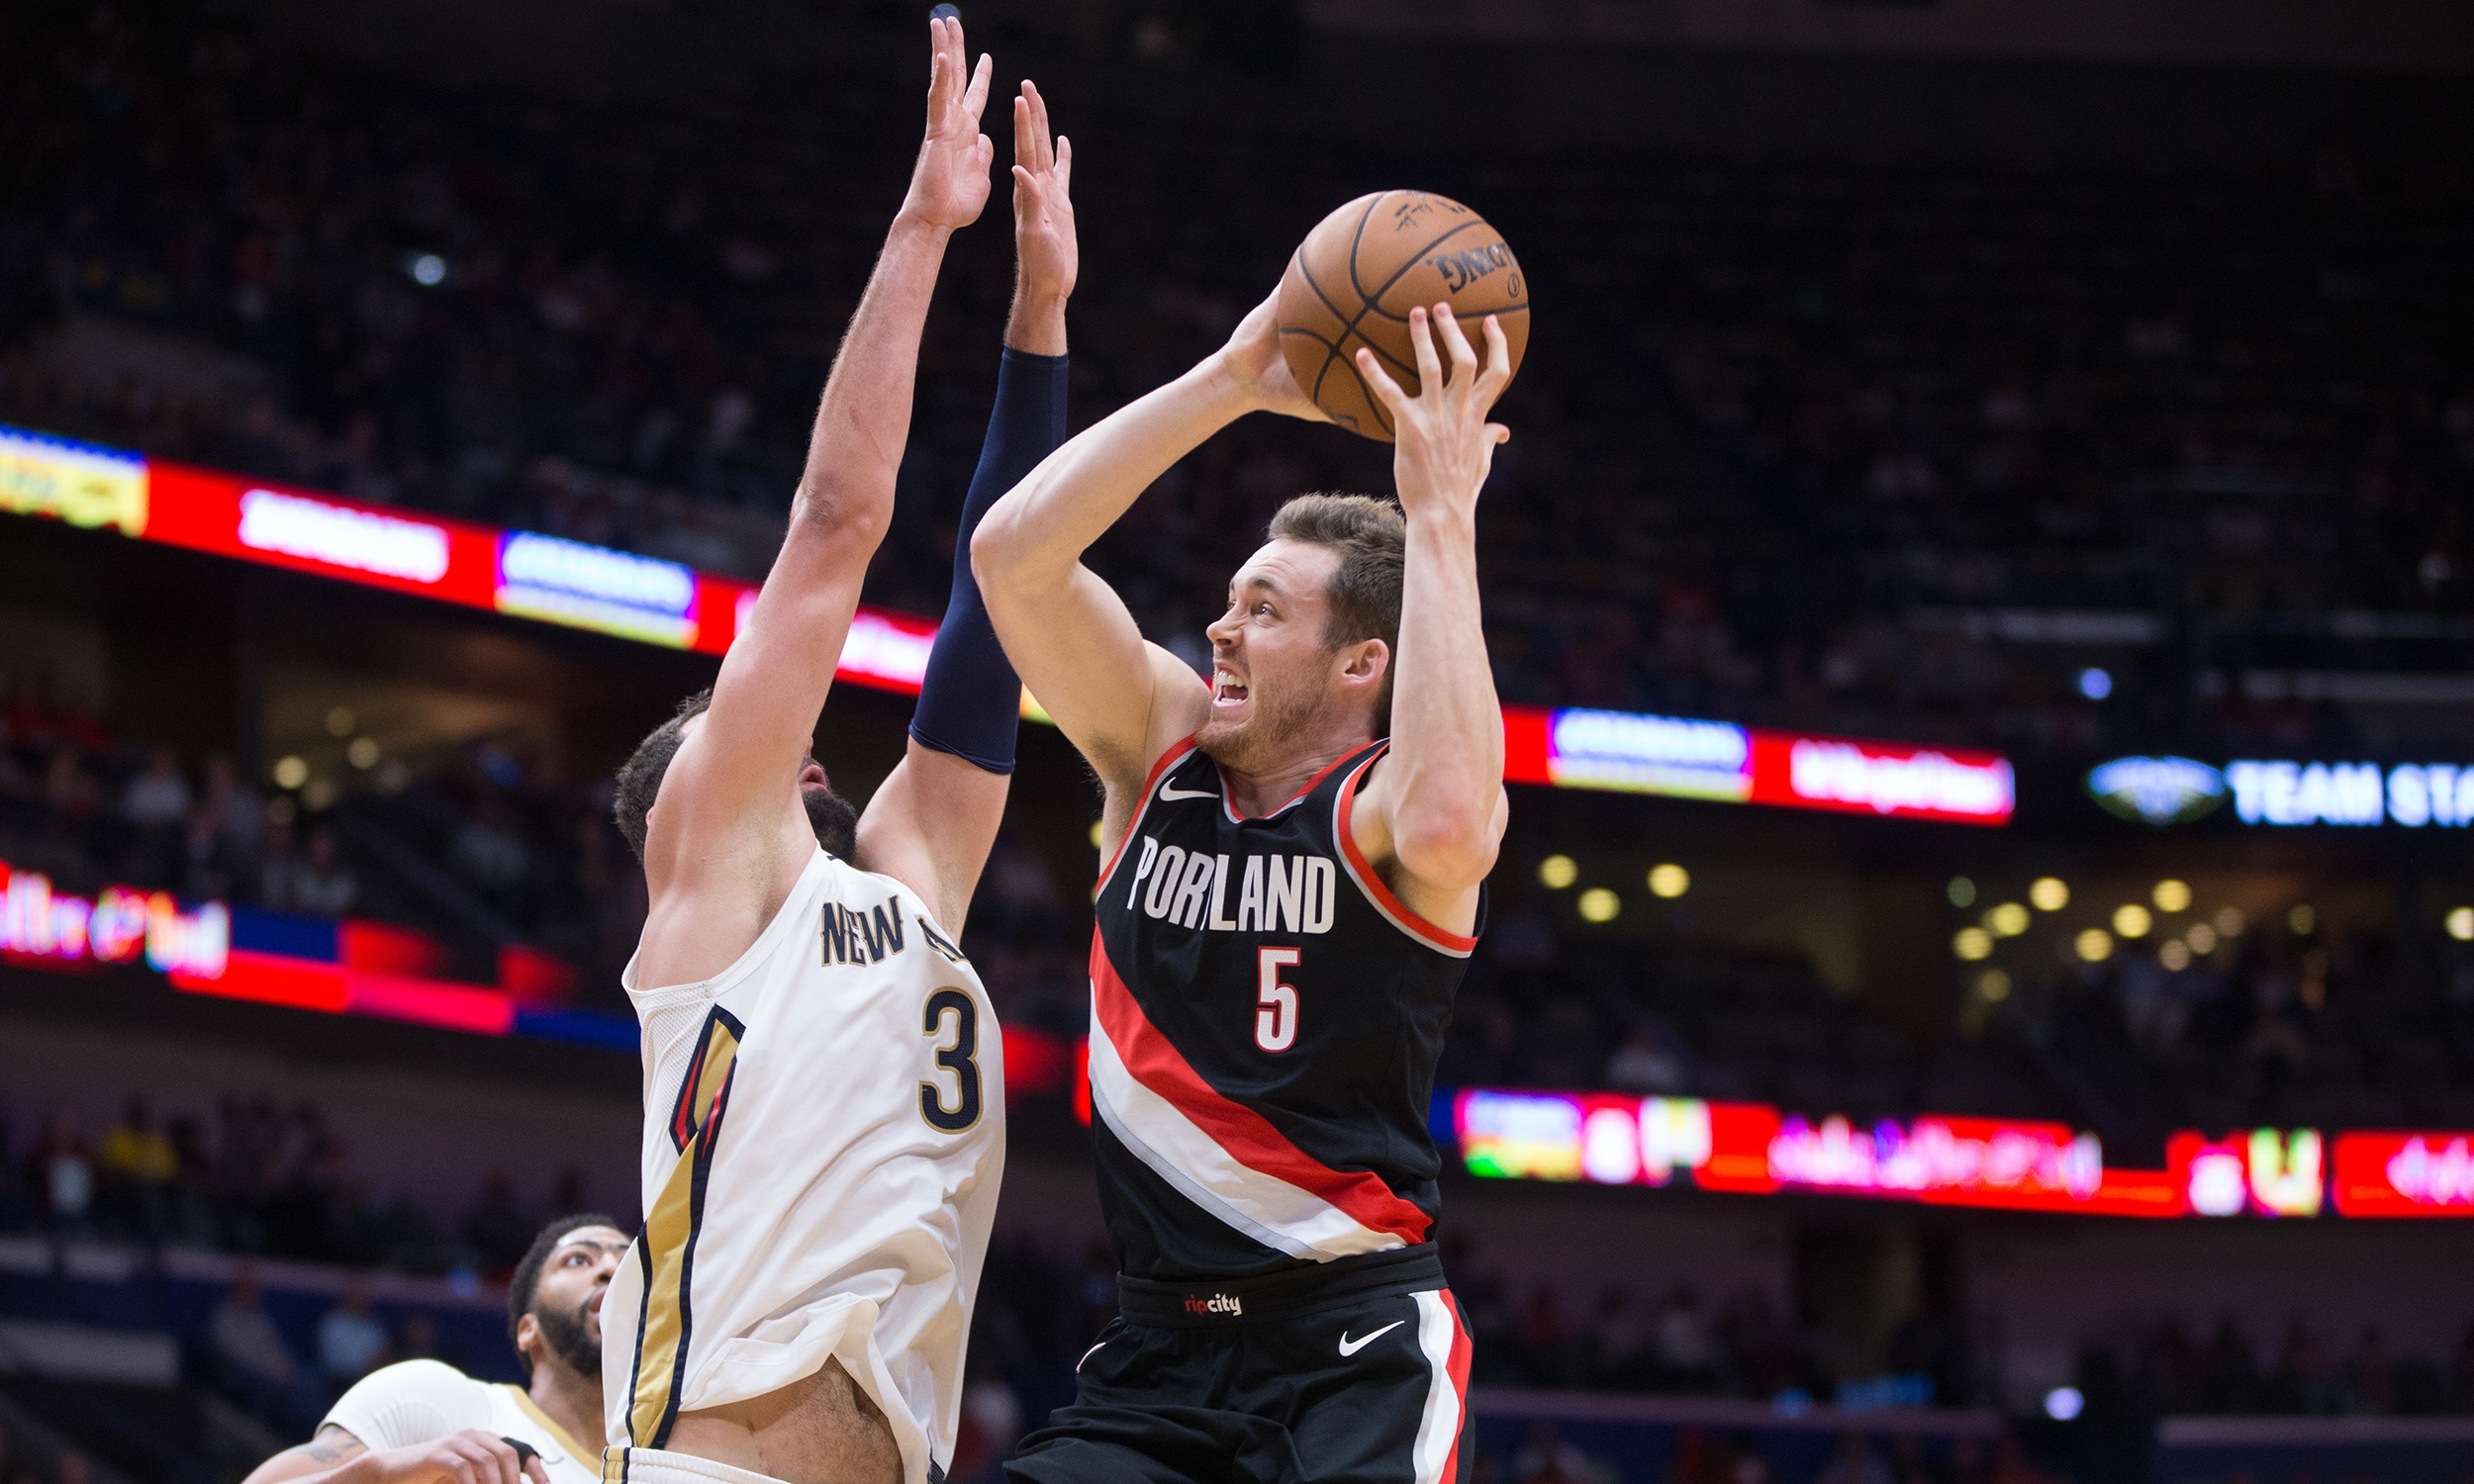 Trail Blazers Game 3 Will Be Available Exclusively On NBCSNW for Local Viewers